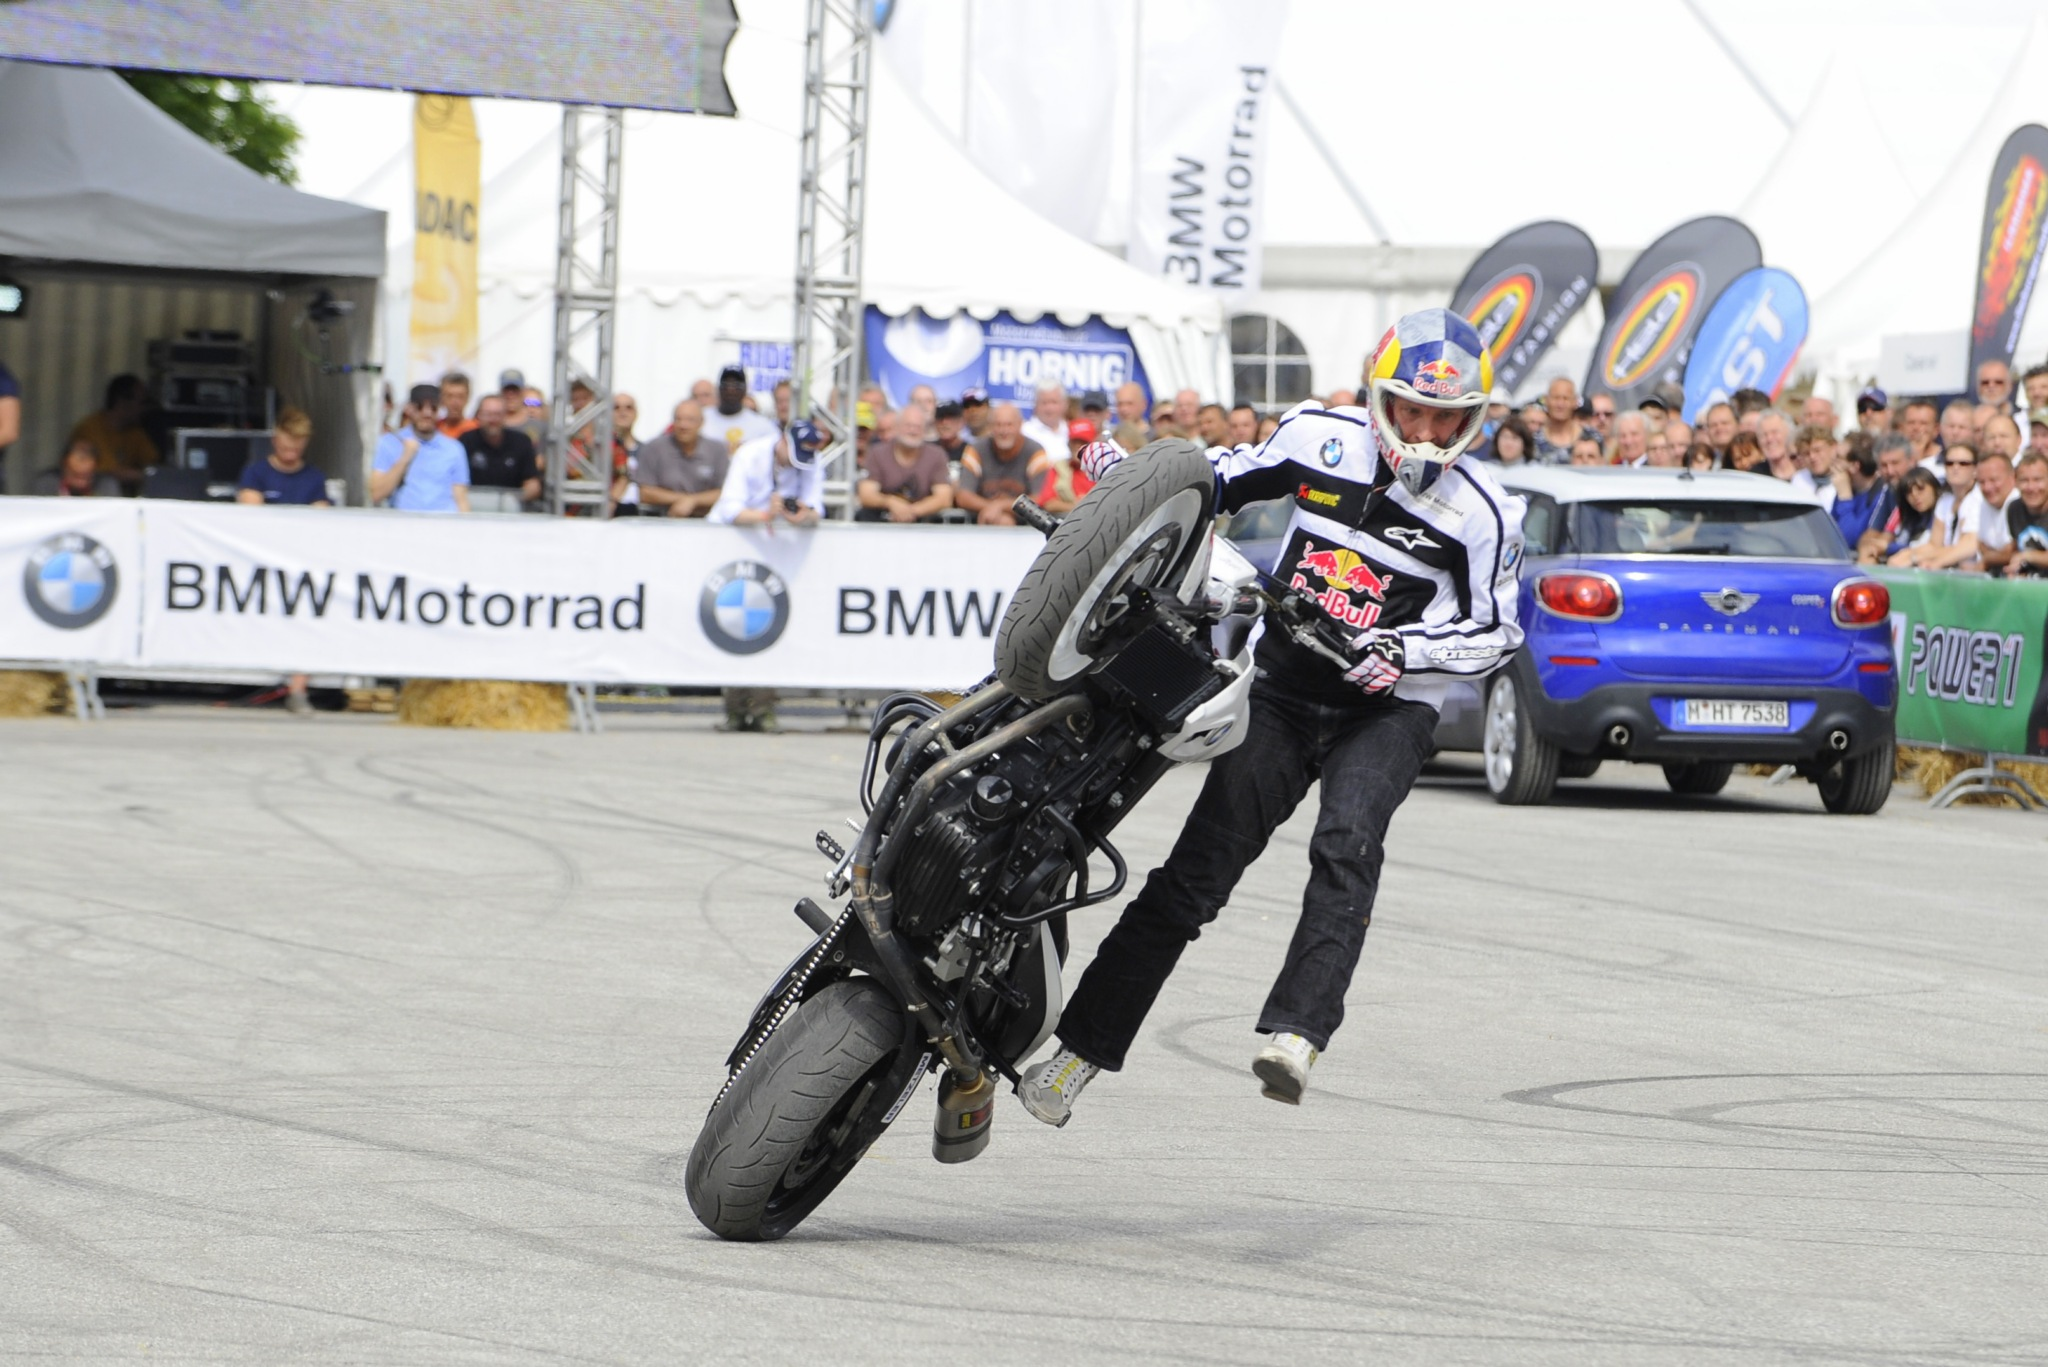 2014 Bmw Motorrad Days Dates And Attractions Announced Autoevolution